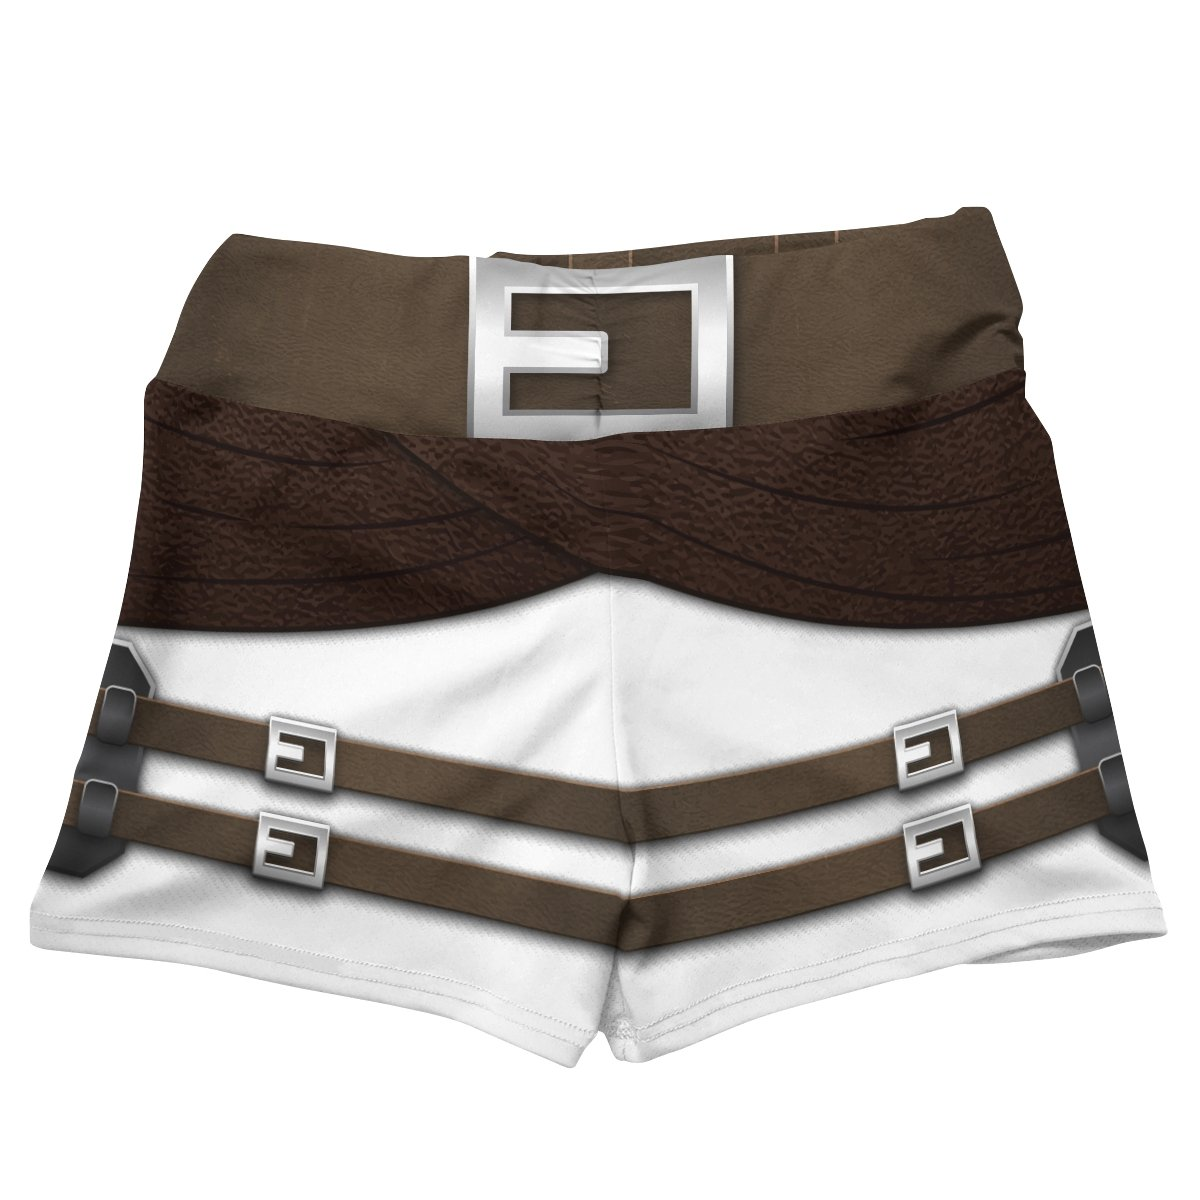 aot corps active wear set 173873 - Anime Swimsuits